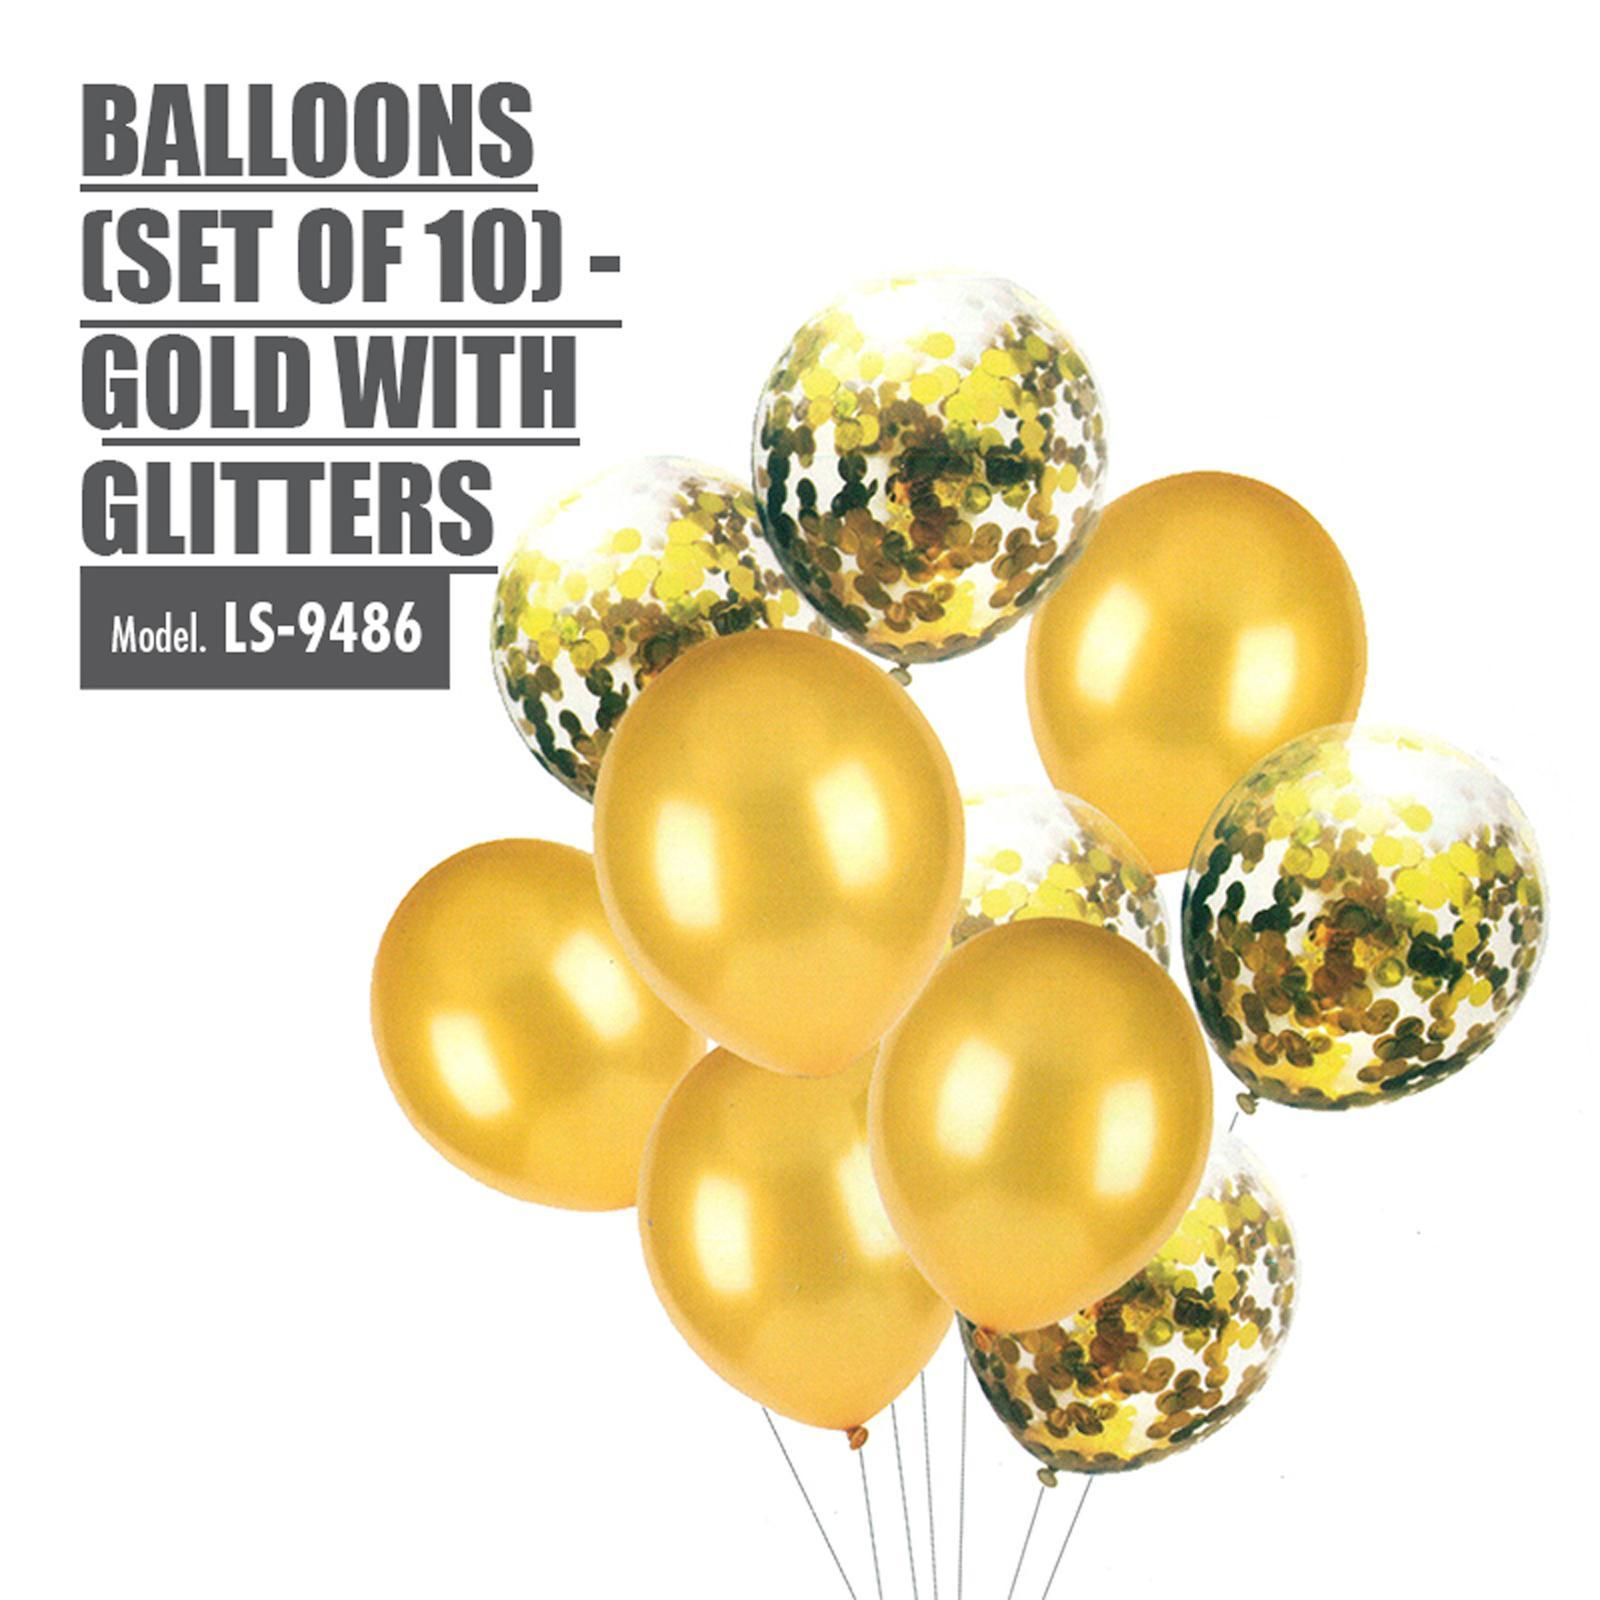 HOUZE Balloons (Set Of 10) - Gold With Glitters